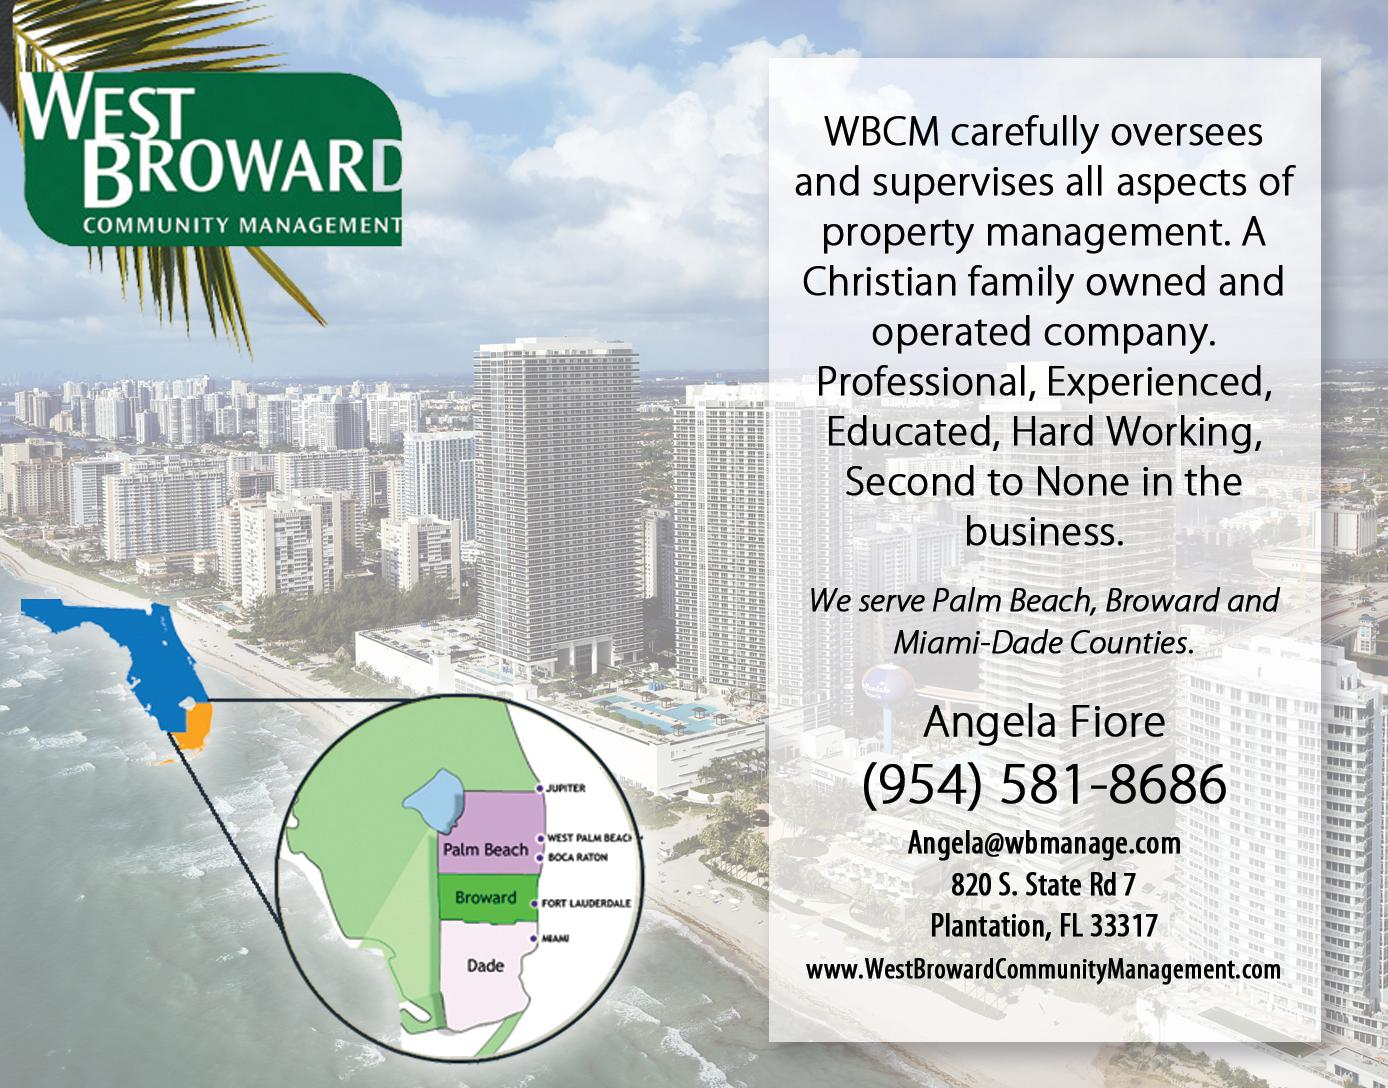 West Broward Community Management, Inc.